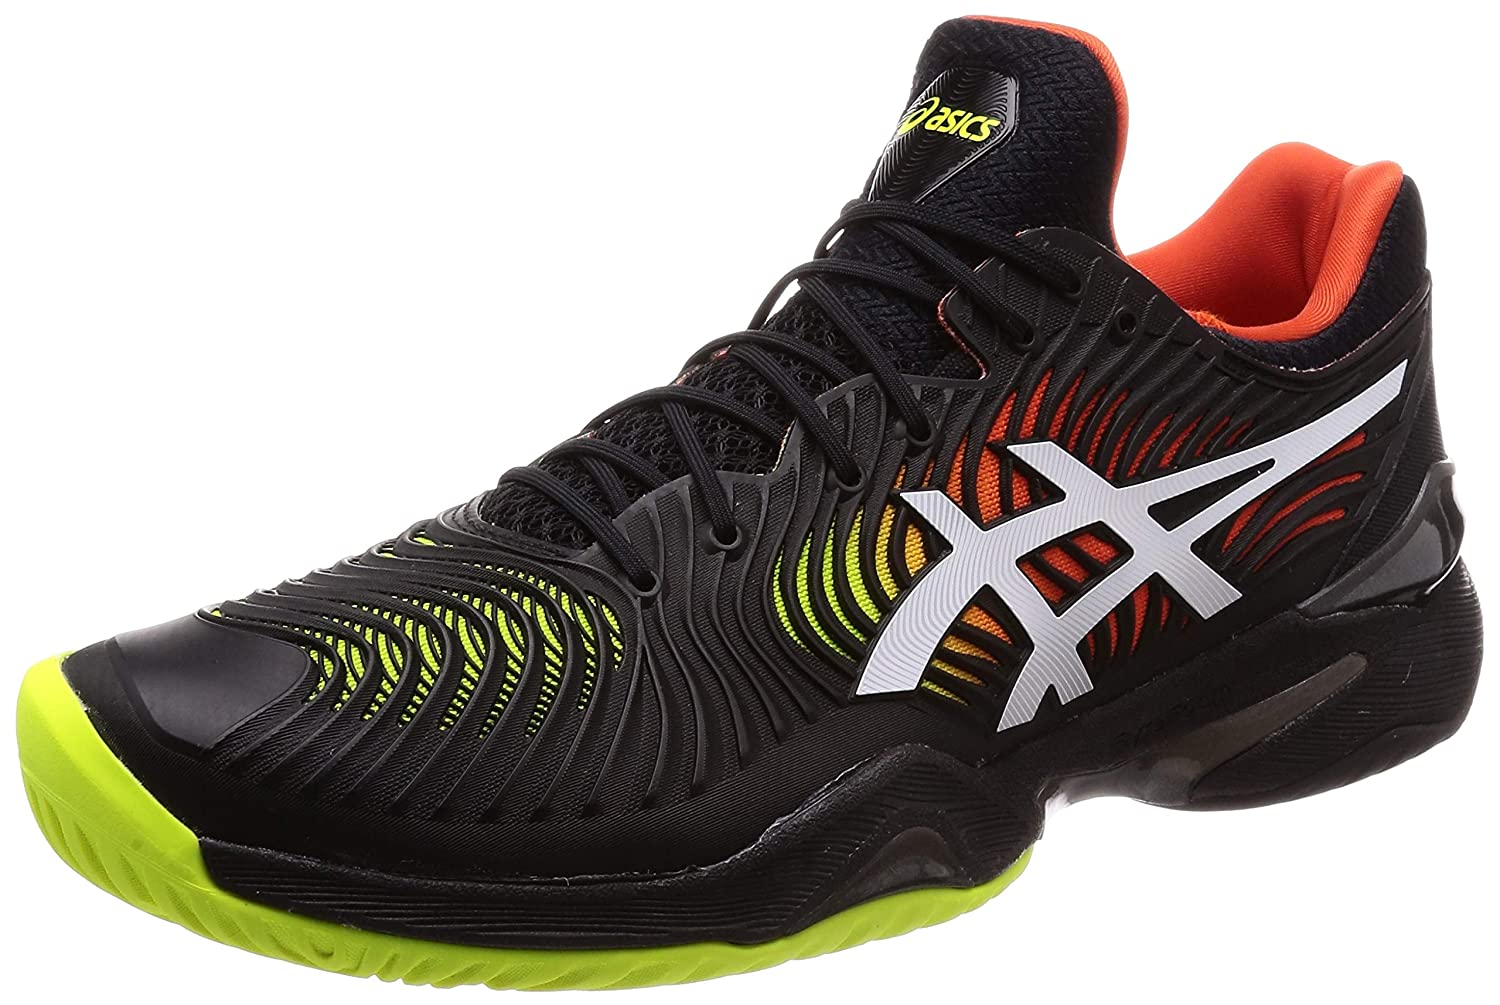 Puma Mens Monolite Limited Edition Arsenal Spikeless Shoes